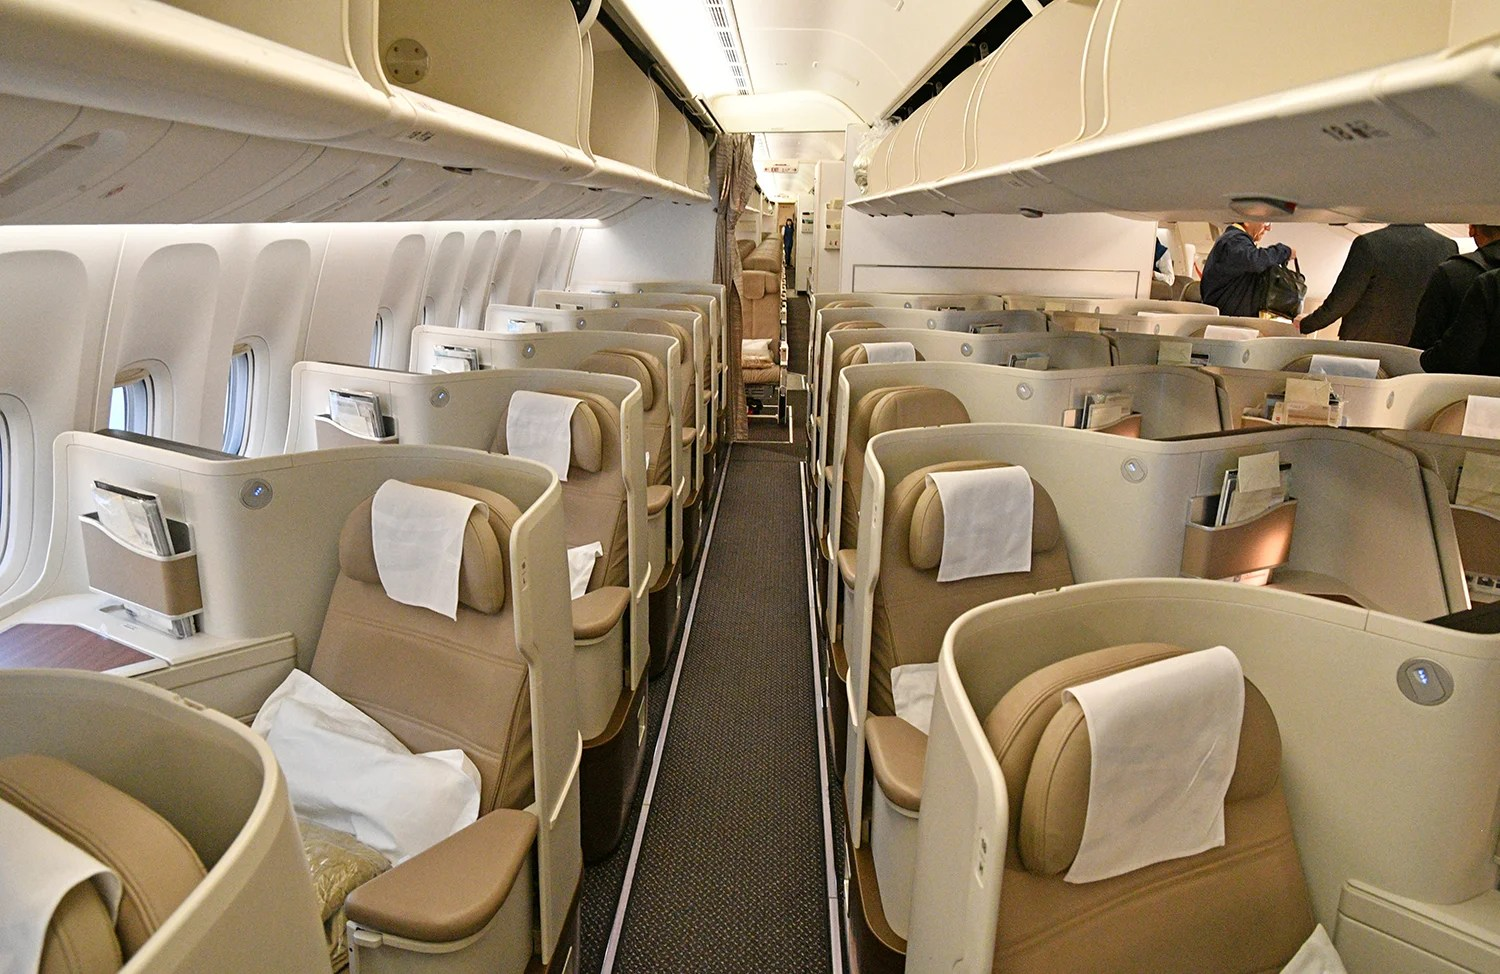 JFK to Dubai Without the Bling: Saudia's Disappointing